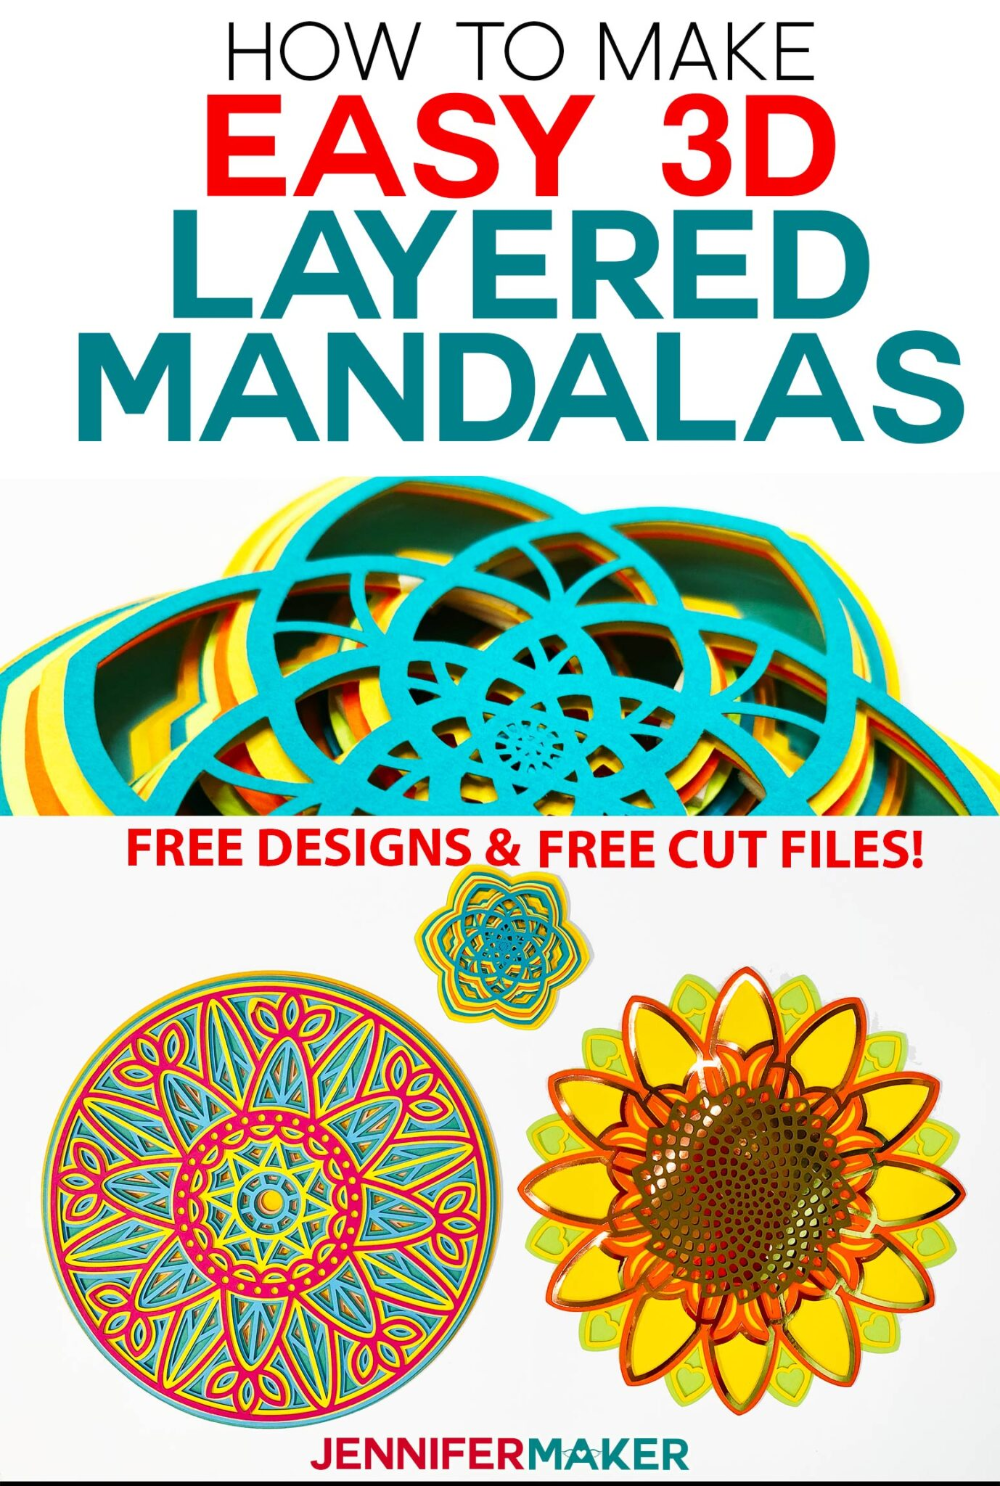 3D Layered Mandalas How to Multilayer & Mesmerize in 2020